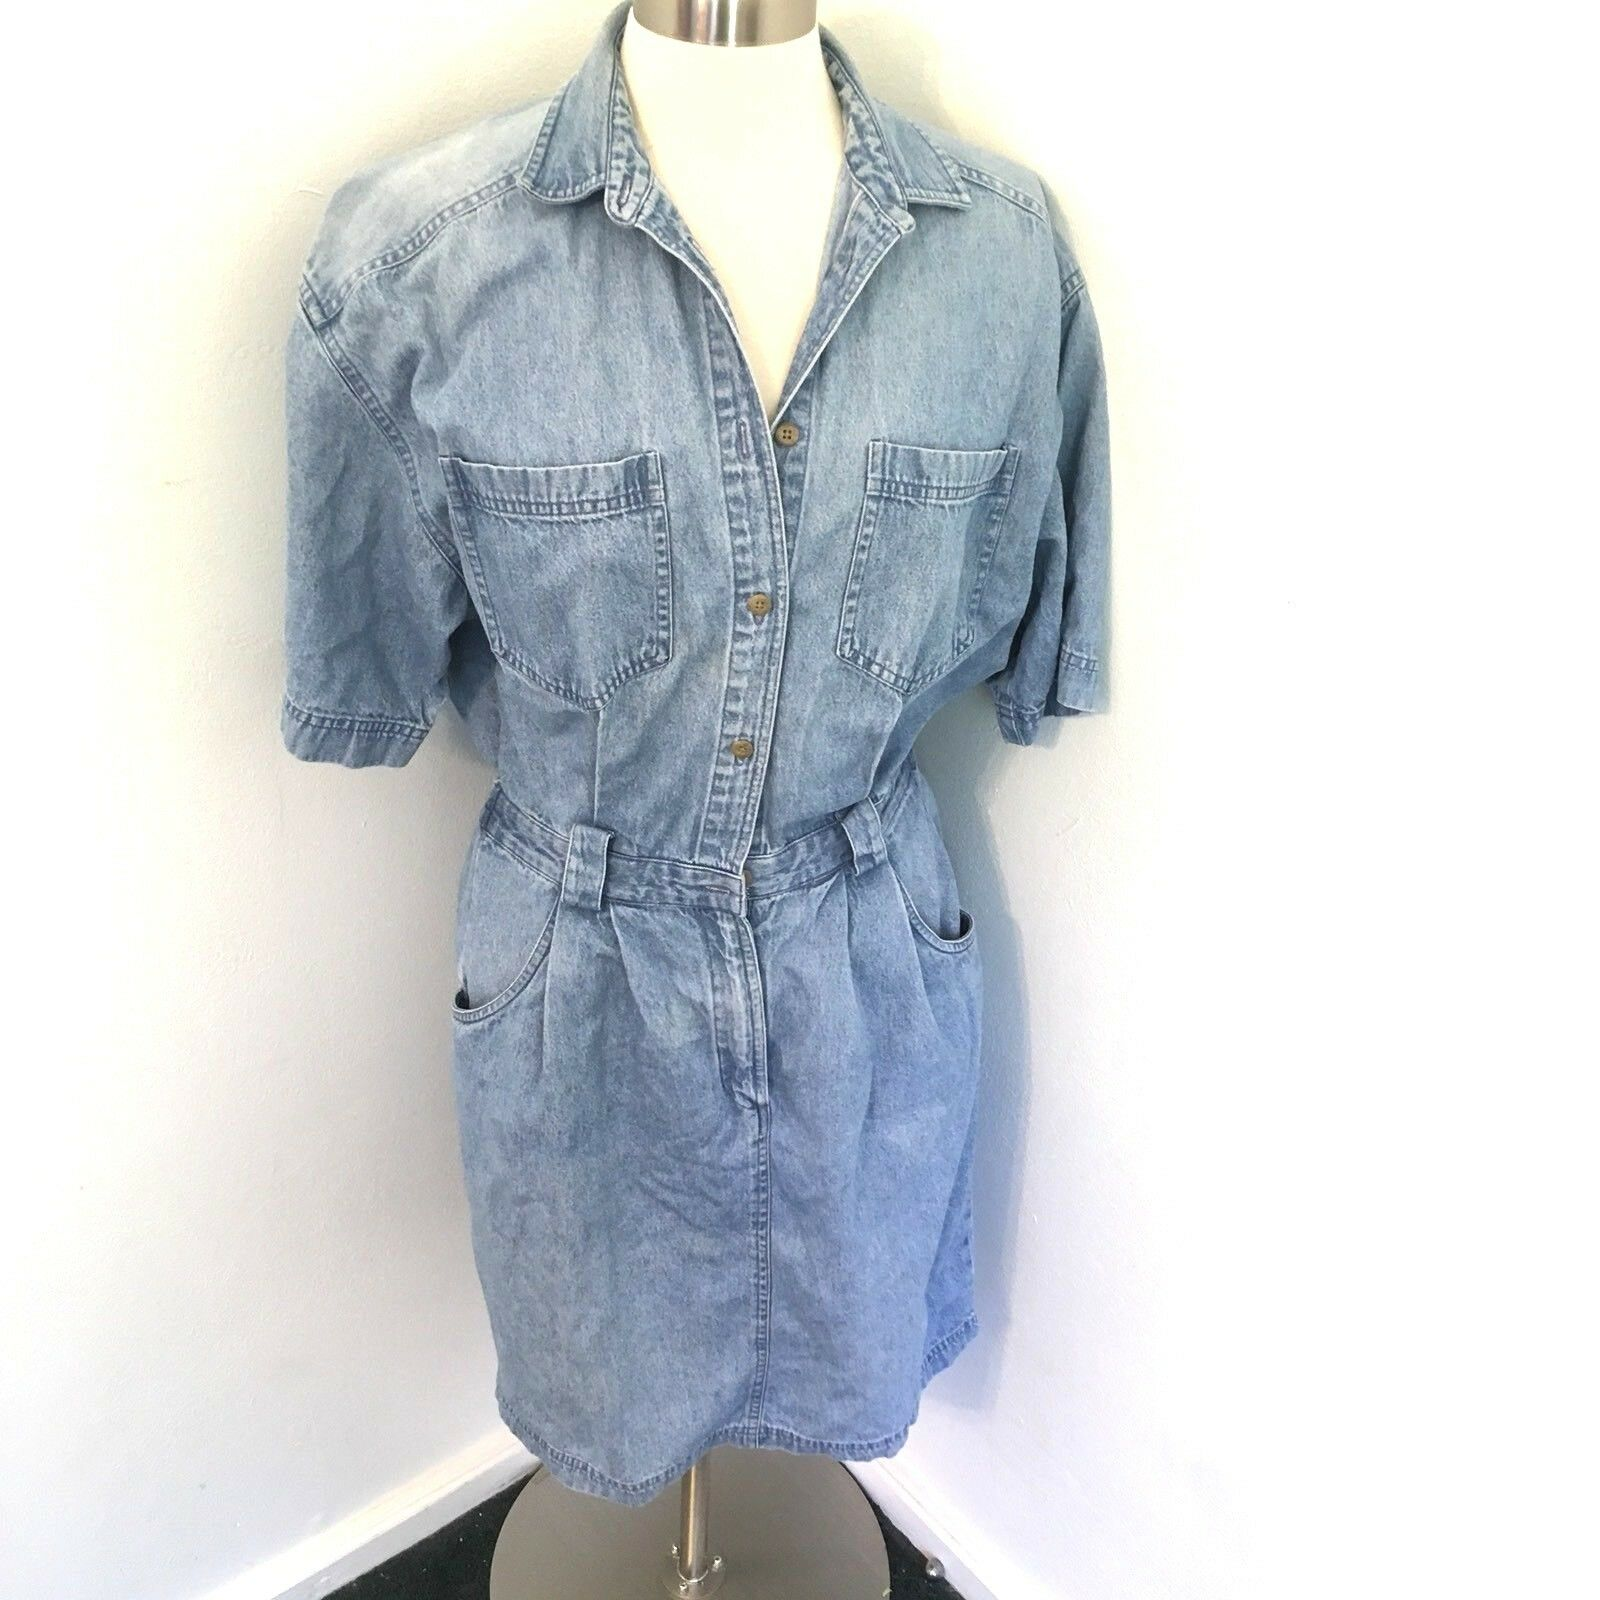 Vintage 90's Denim Dress Jean Short Sleeve Distressed Grunge Button Up Hipster